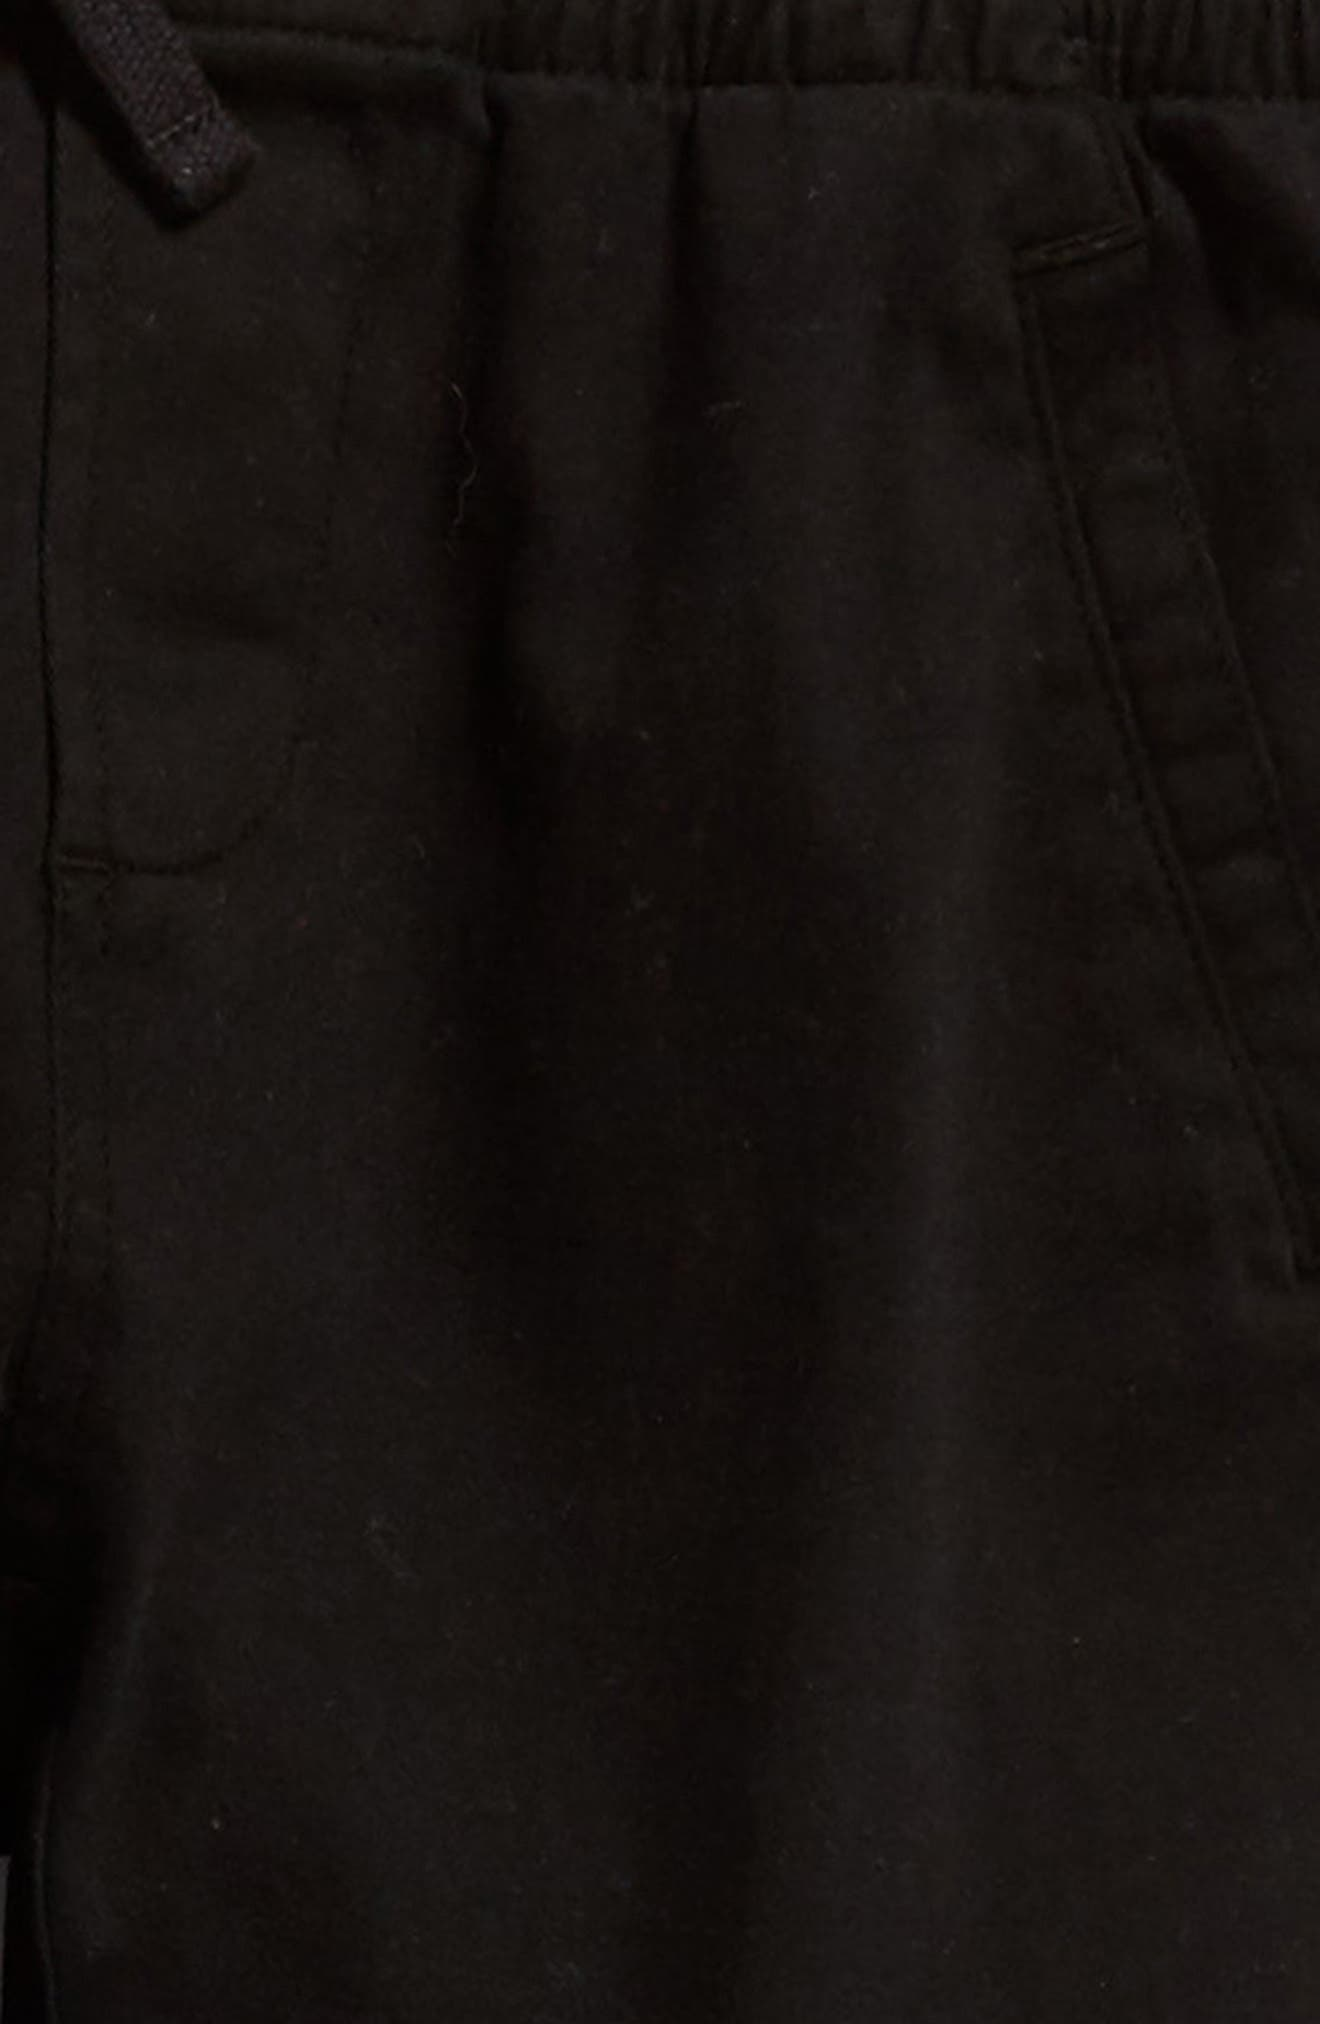 Washed Sweatpants,                             Alternate thumbnail 4, color,                             Black